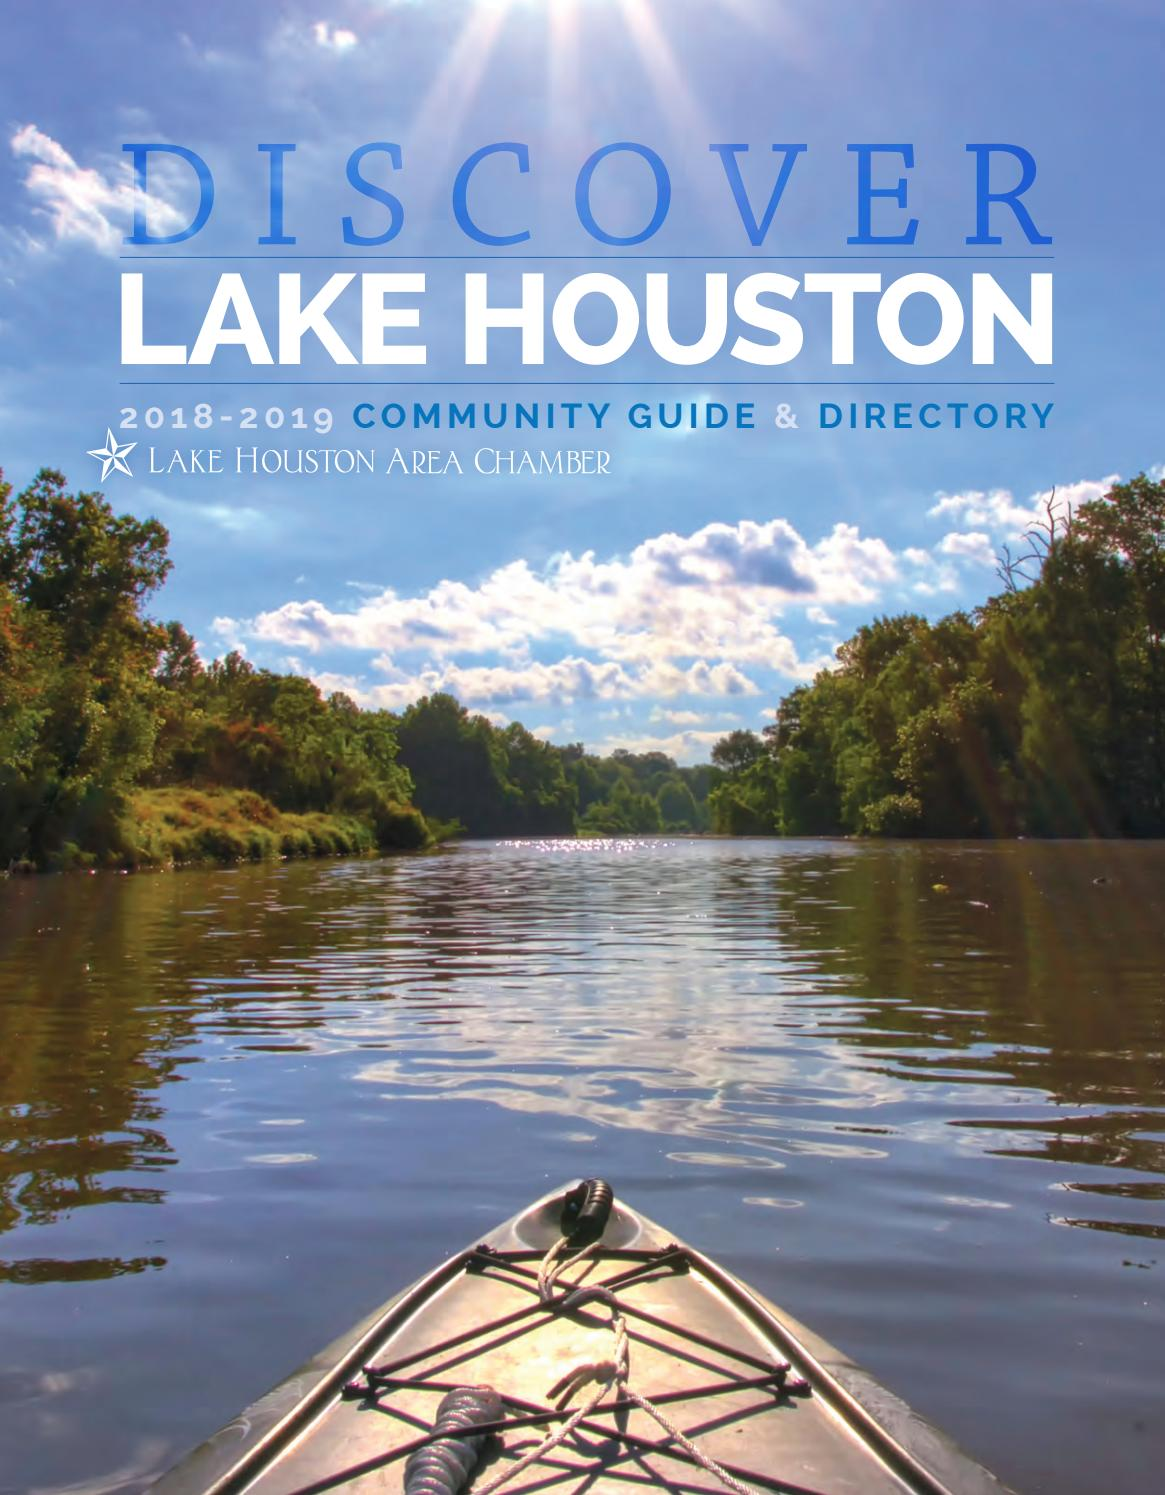 Sims 3 Serre Attention Aux Jets De Pierre Lake Houston Area Community Guide Directory 2018 2019 By Lake